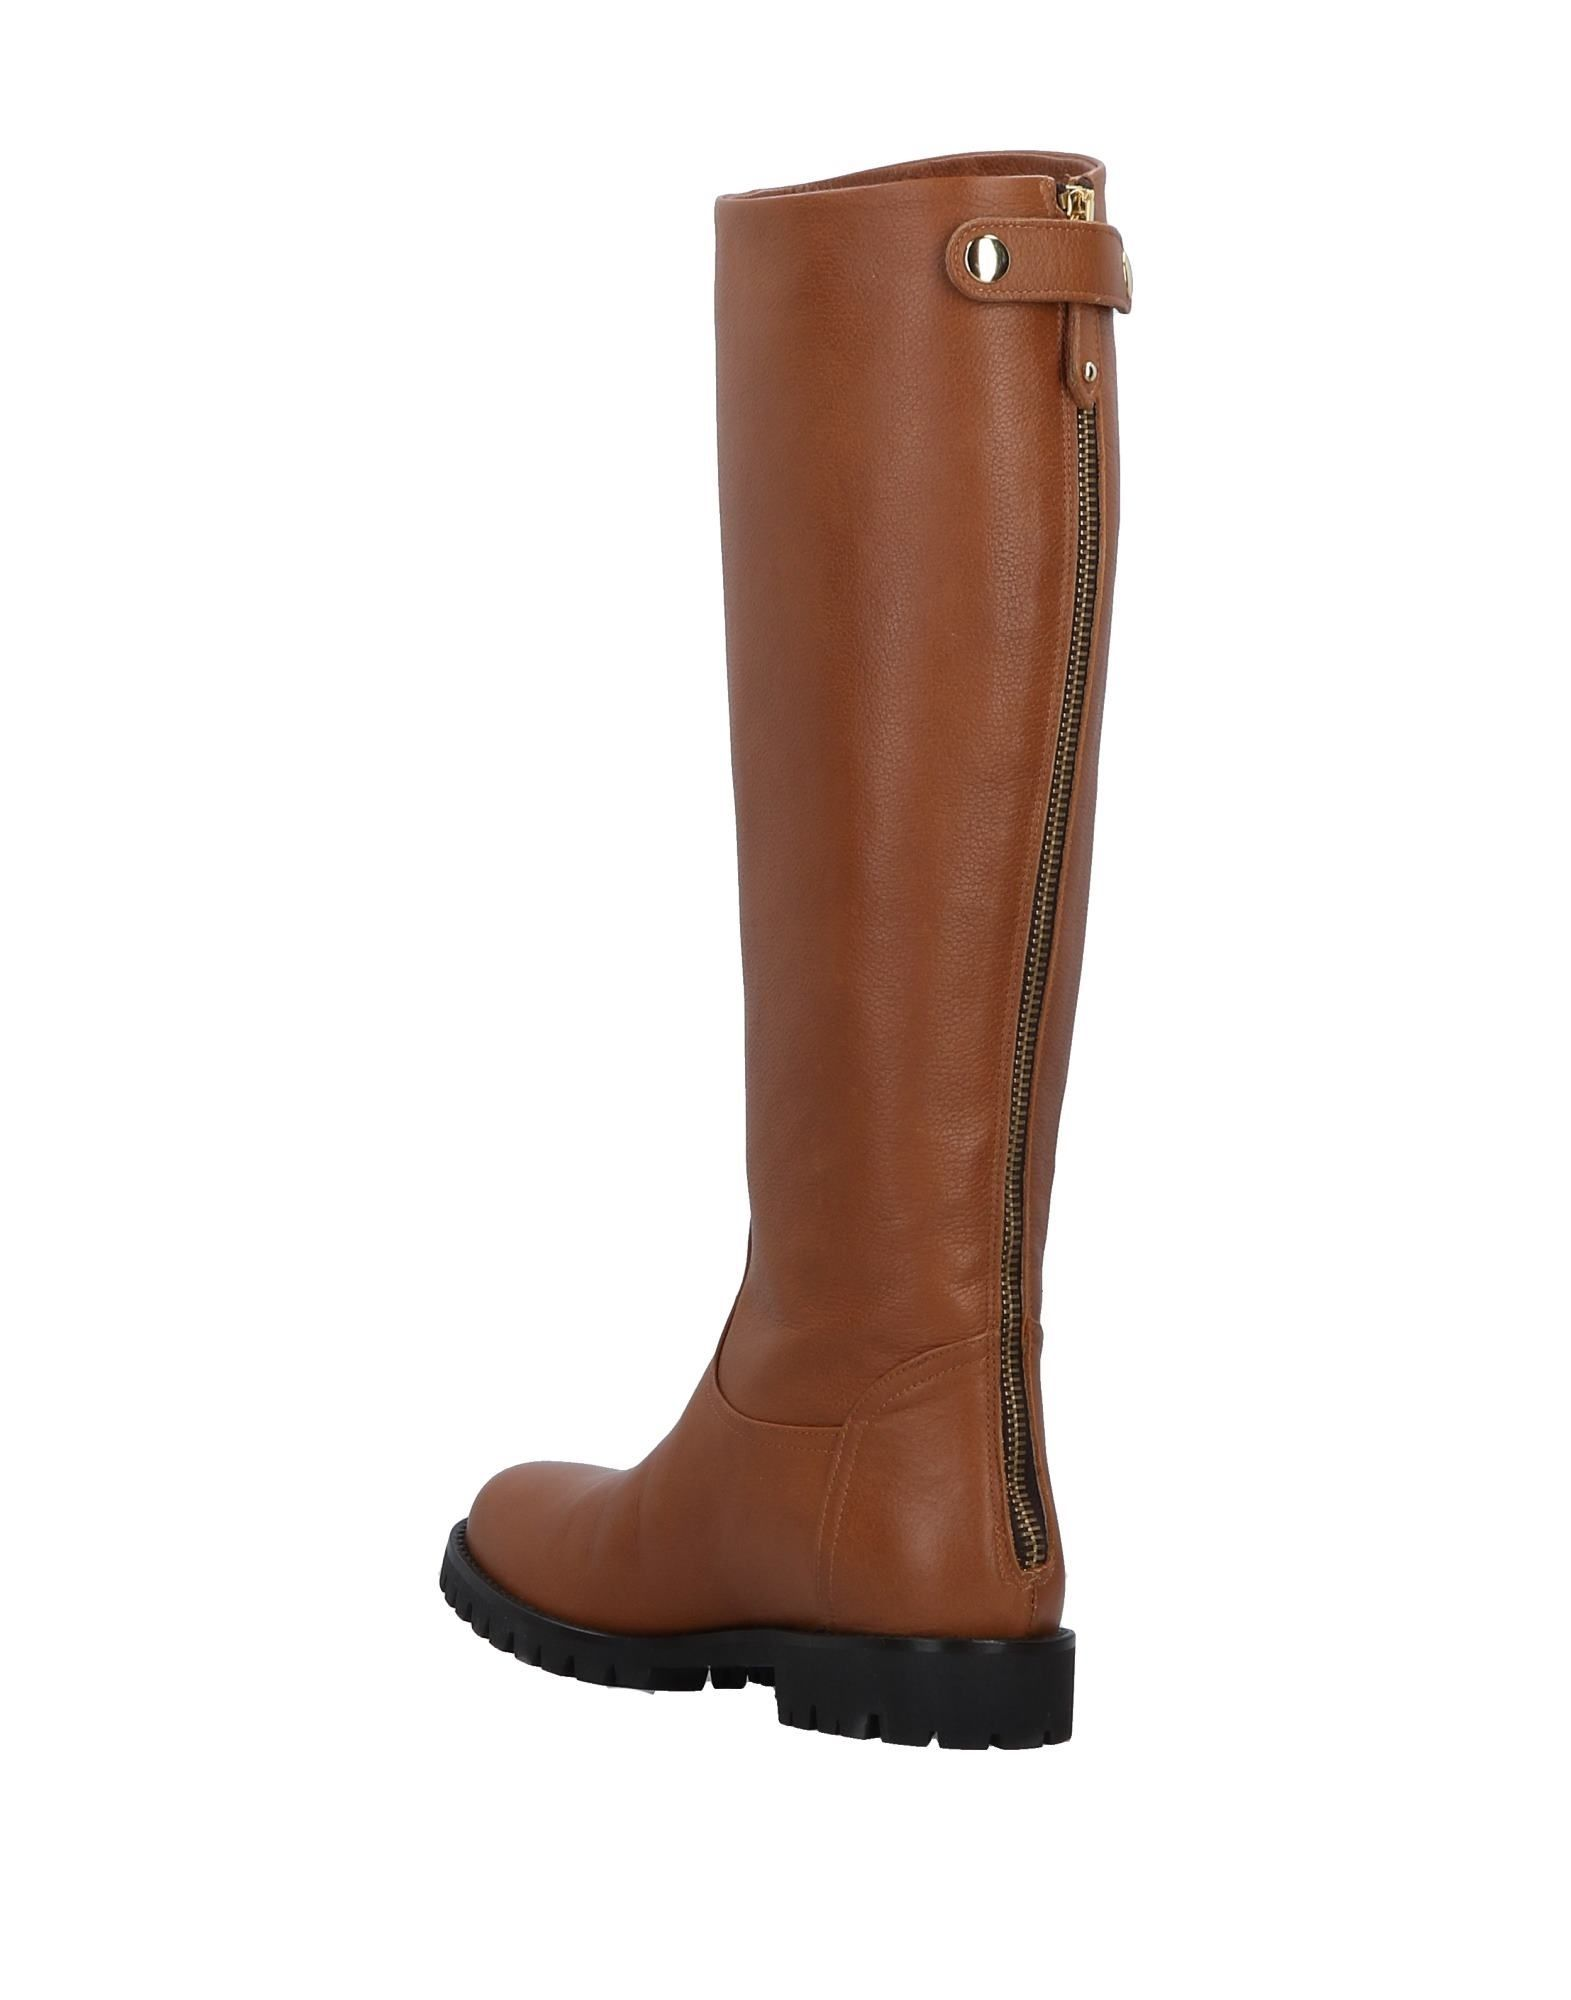 Bruglia Camel Leather Knee High Boots